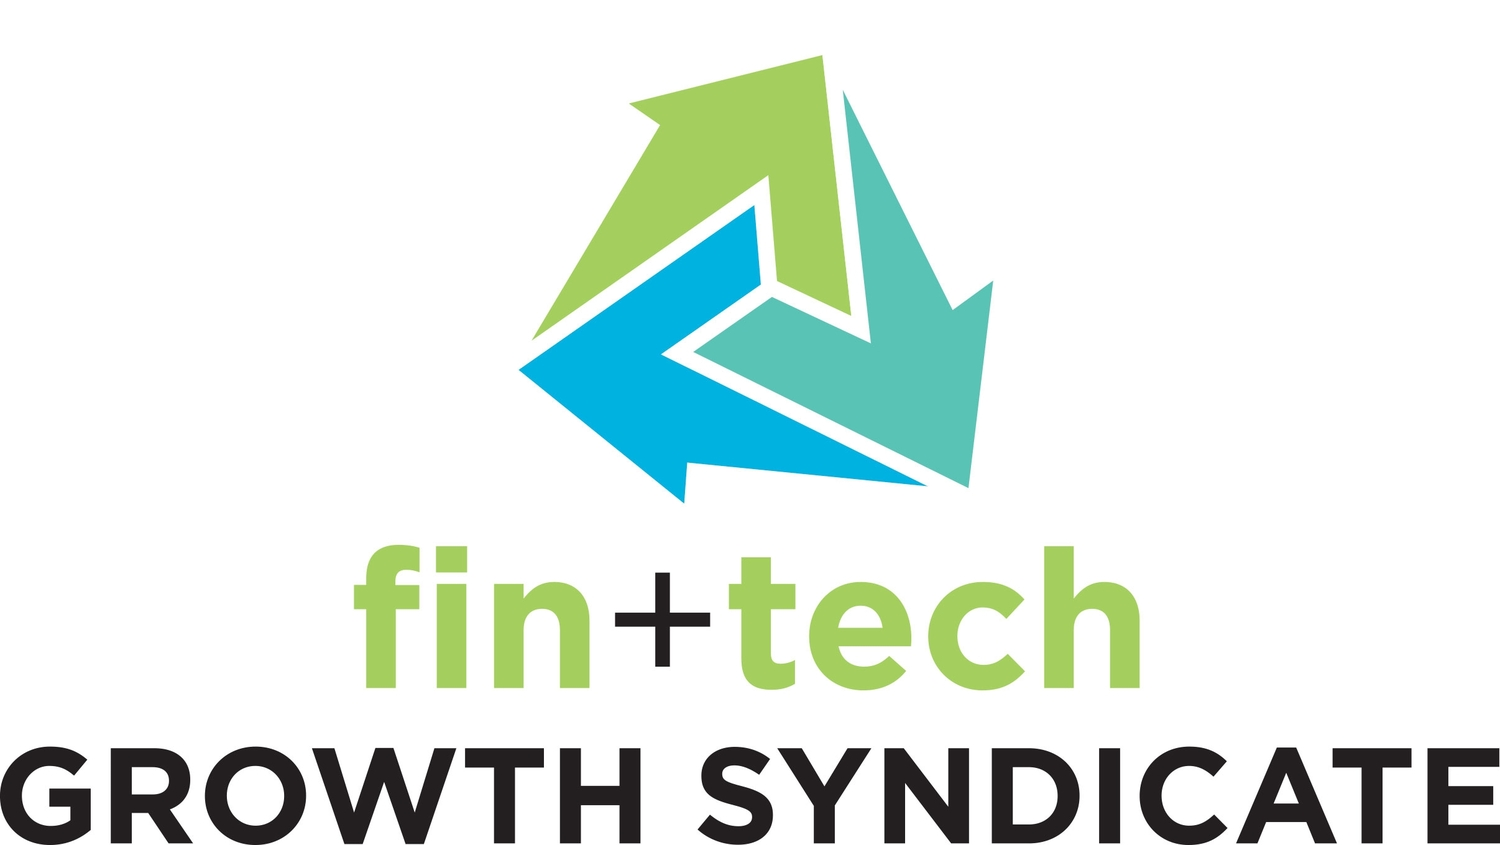 Fin+Tech Growth Syndicate